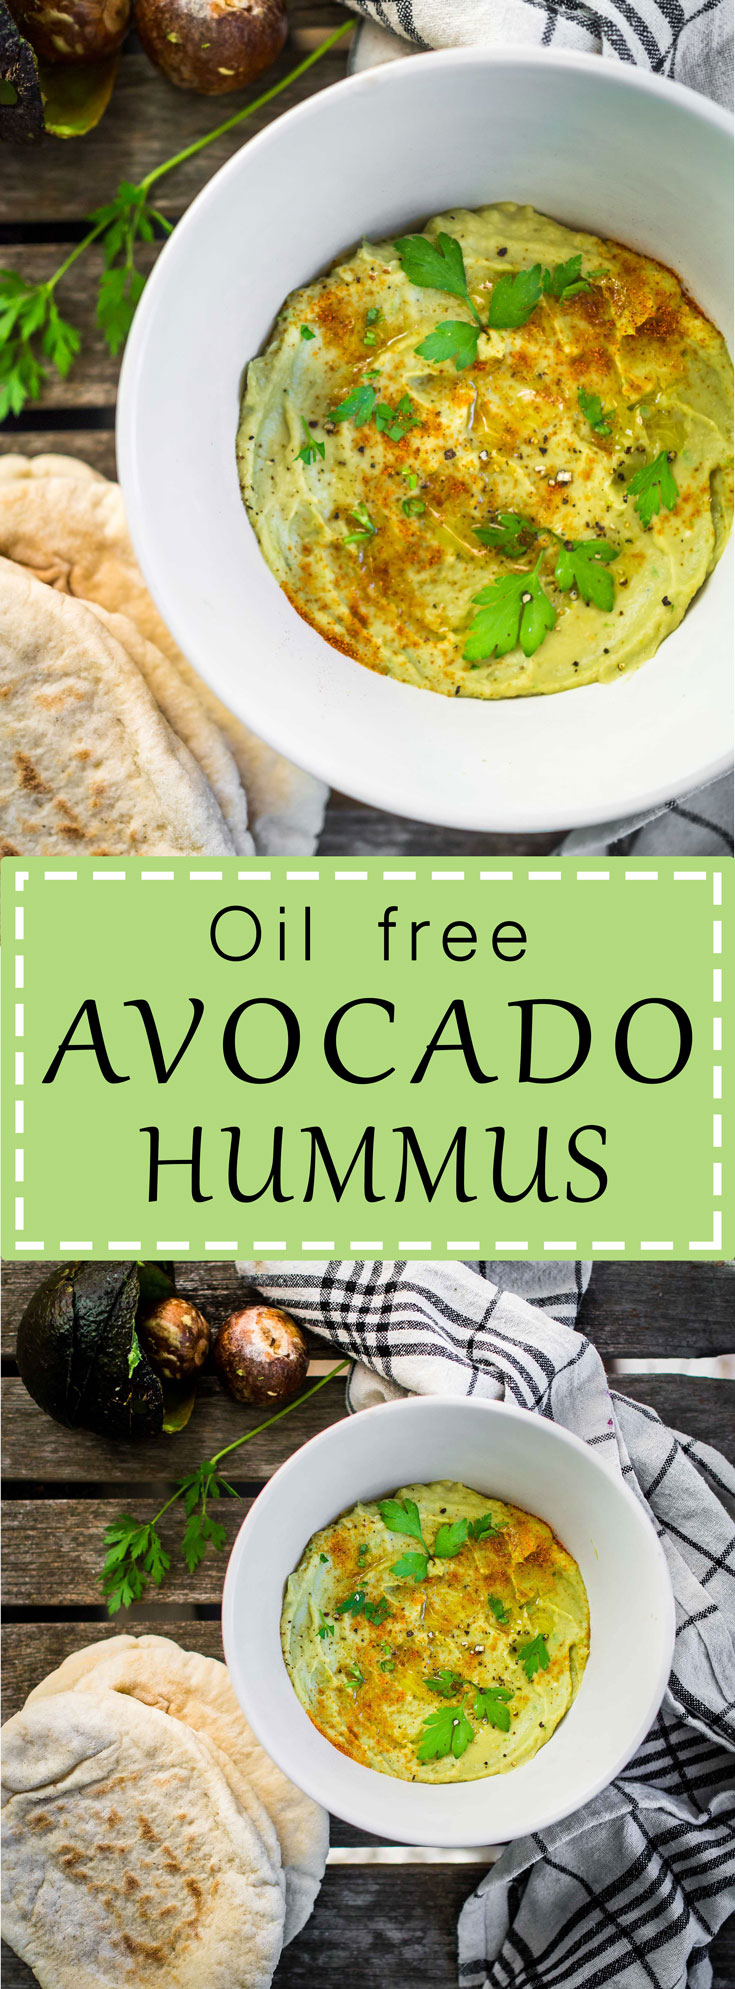 Oil Free Avocado Hummus | Discover Delicious | www.discoverdelicious.org | Vegan Food